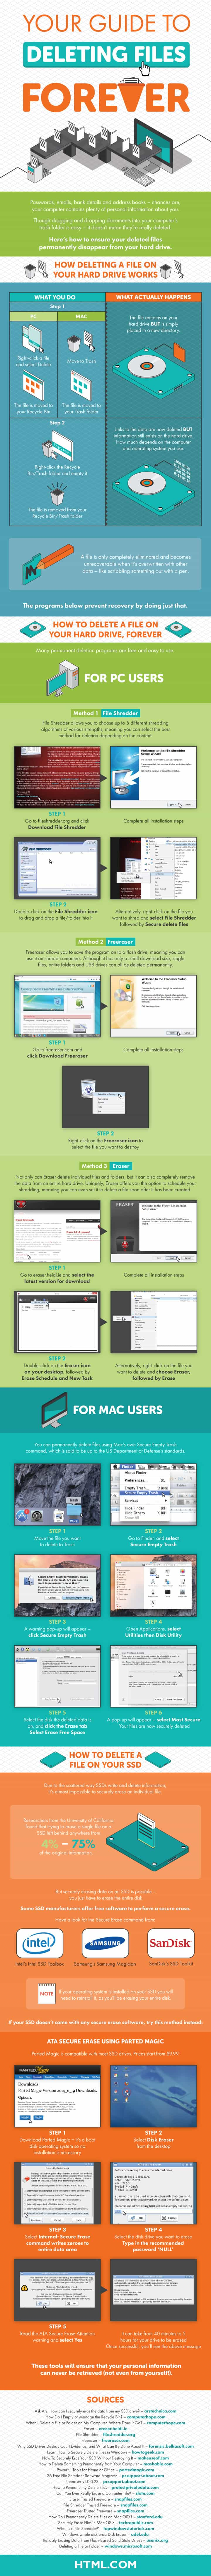 How to delete files forever infographic